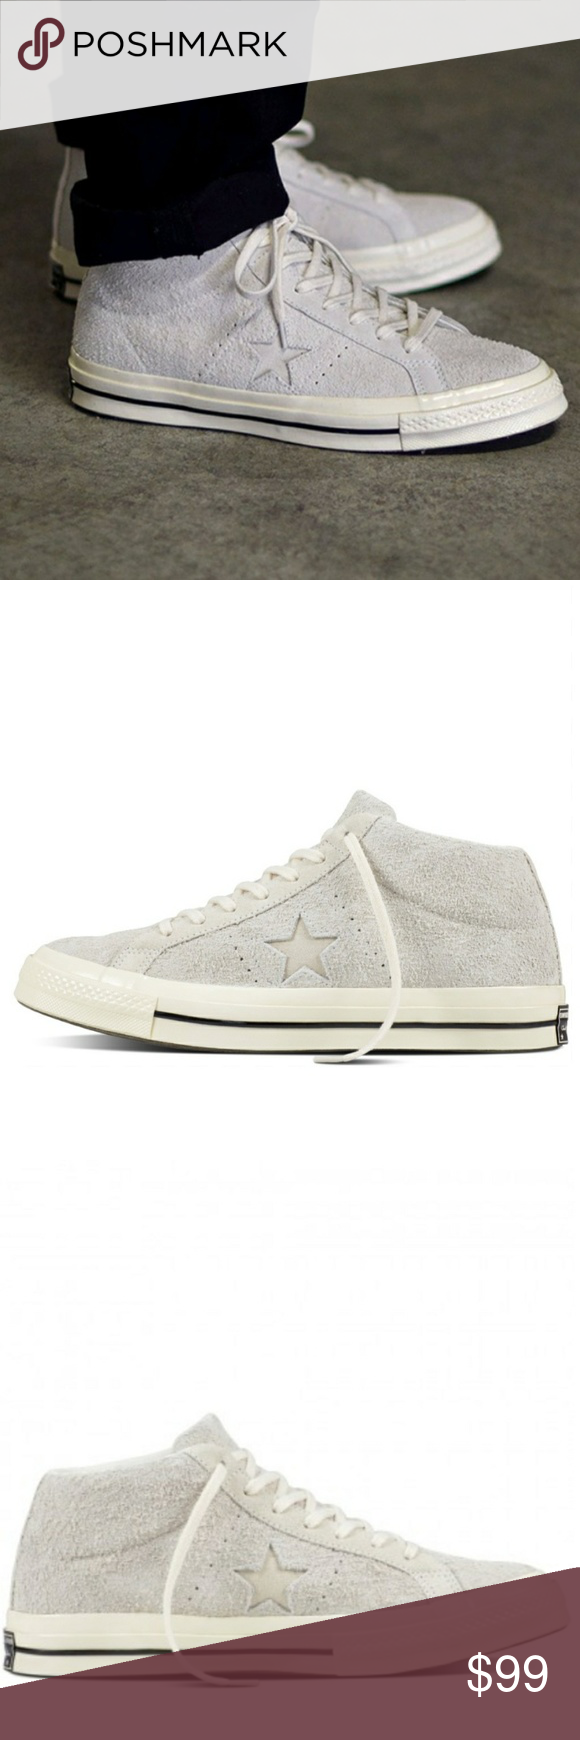 80959b9de82ffd NWT Converse One Star  74 Suede Leather - Mid-top sneakers - Throwback to